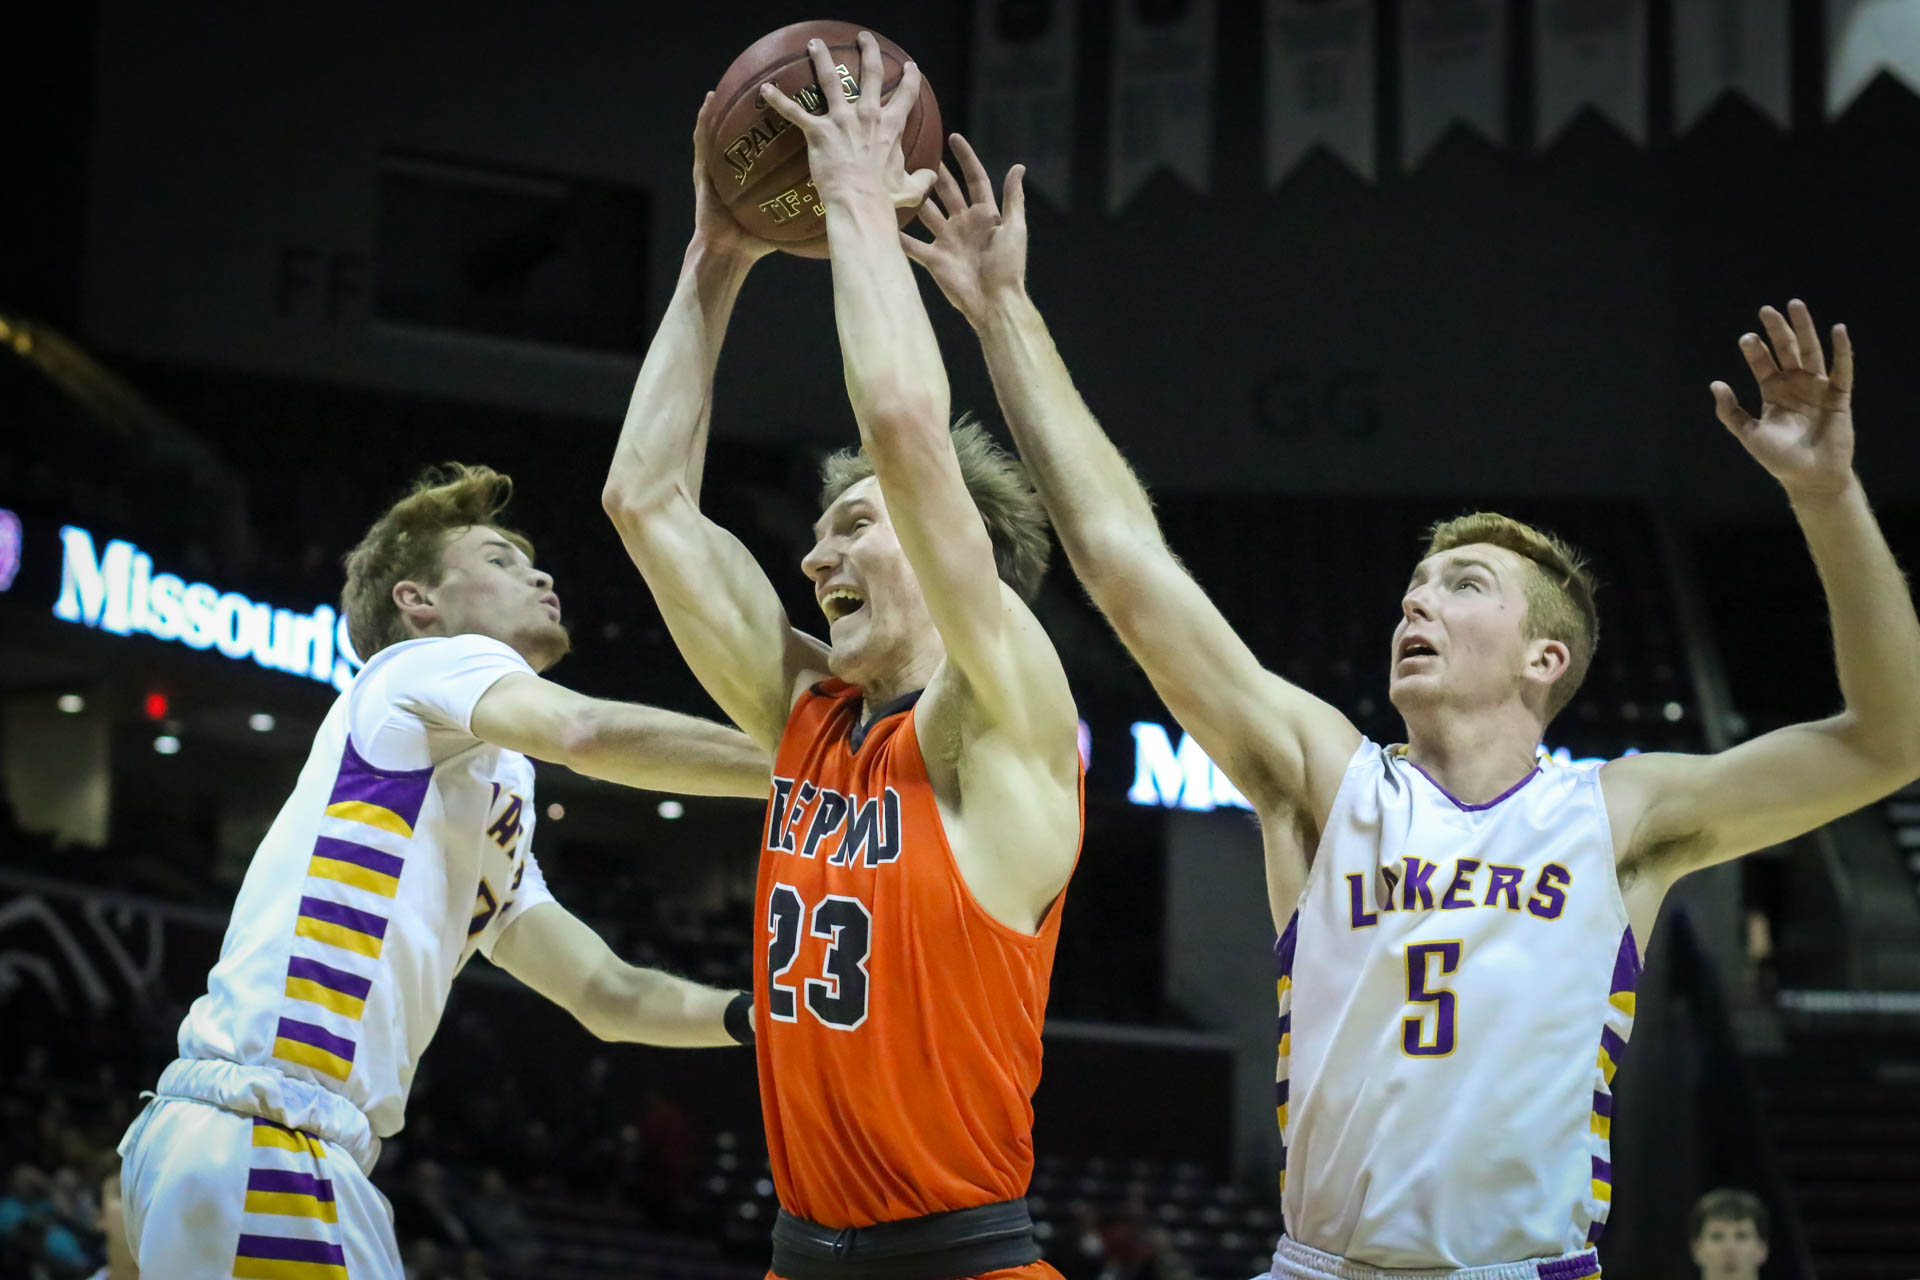 Photos:  Varsity Boys Basketball Vs Camdenton